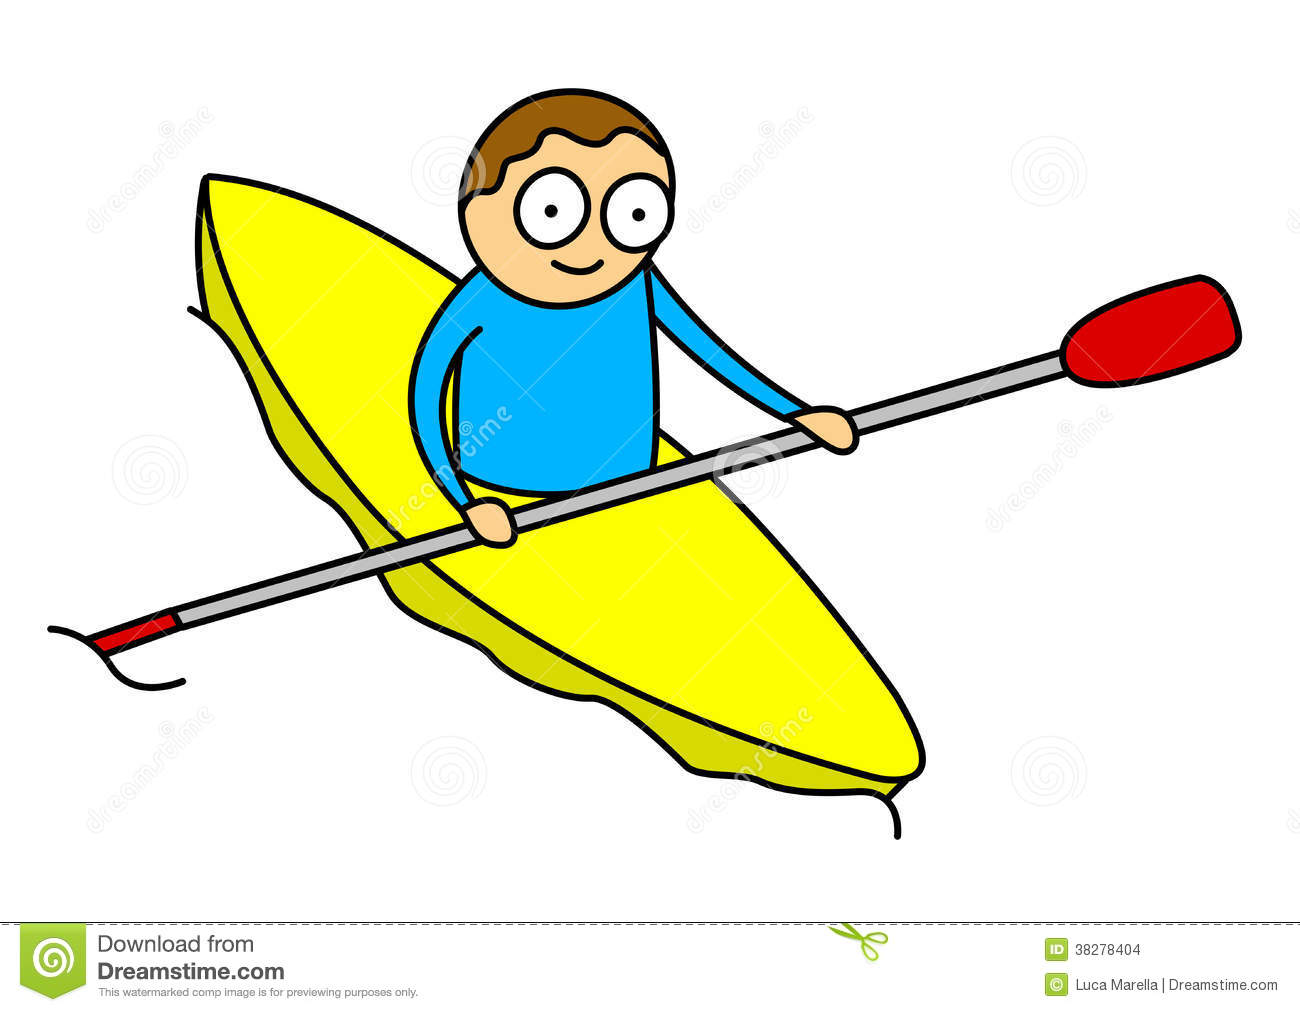 Stock Images Kayak Kid Image38278404 on Yellow Objects Clipart For Kids